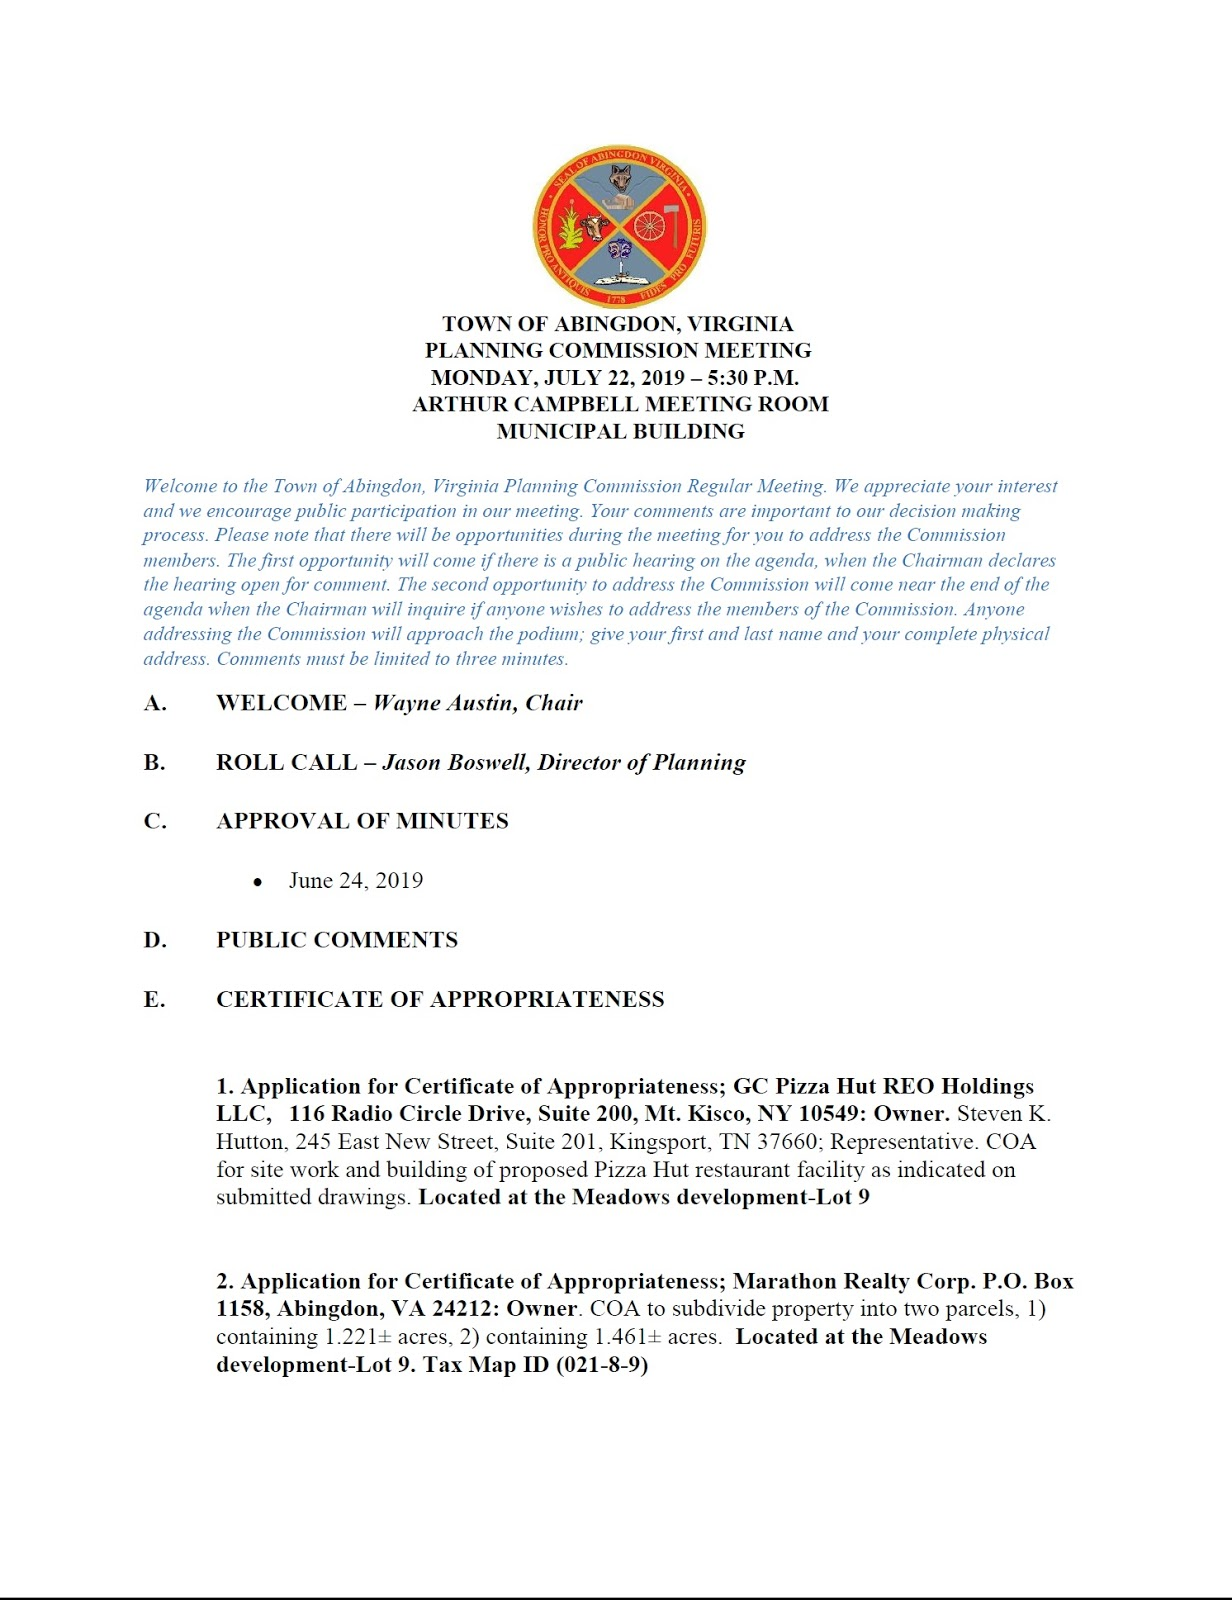 Town Of Abingdon Virginia Planning Commission Agenda For